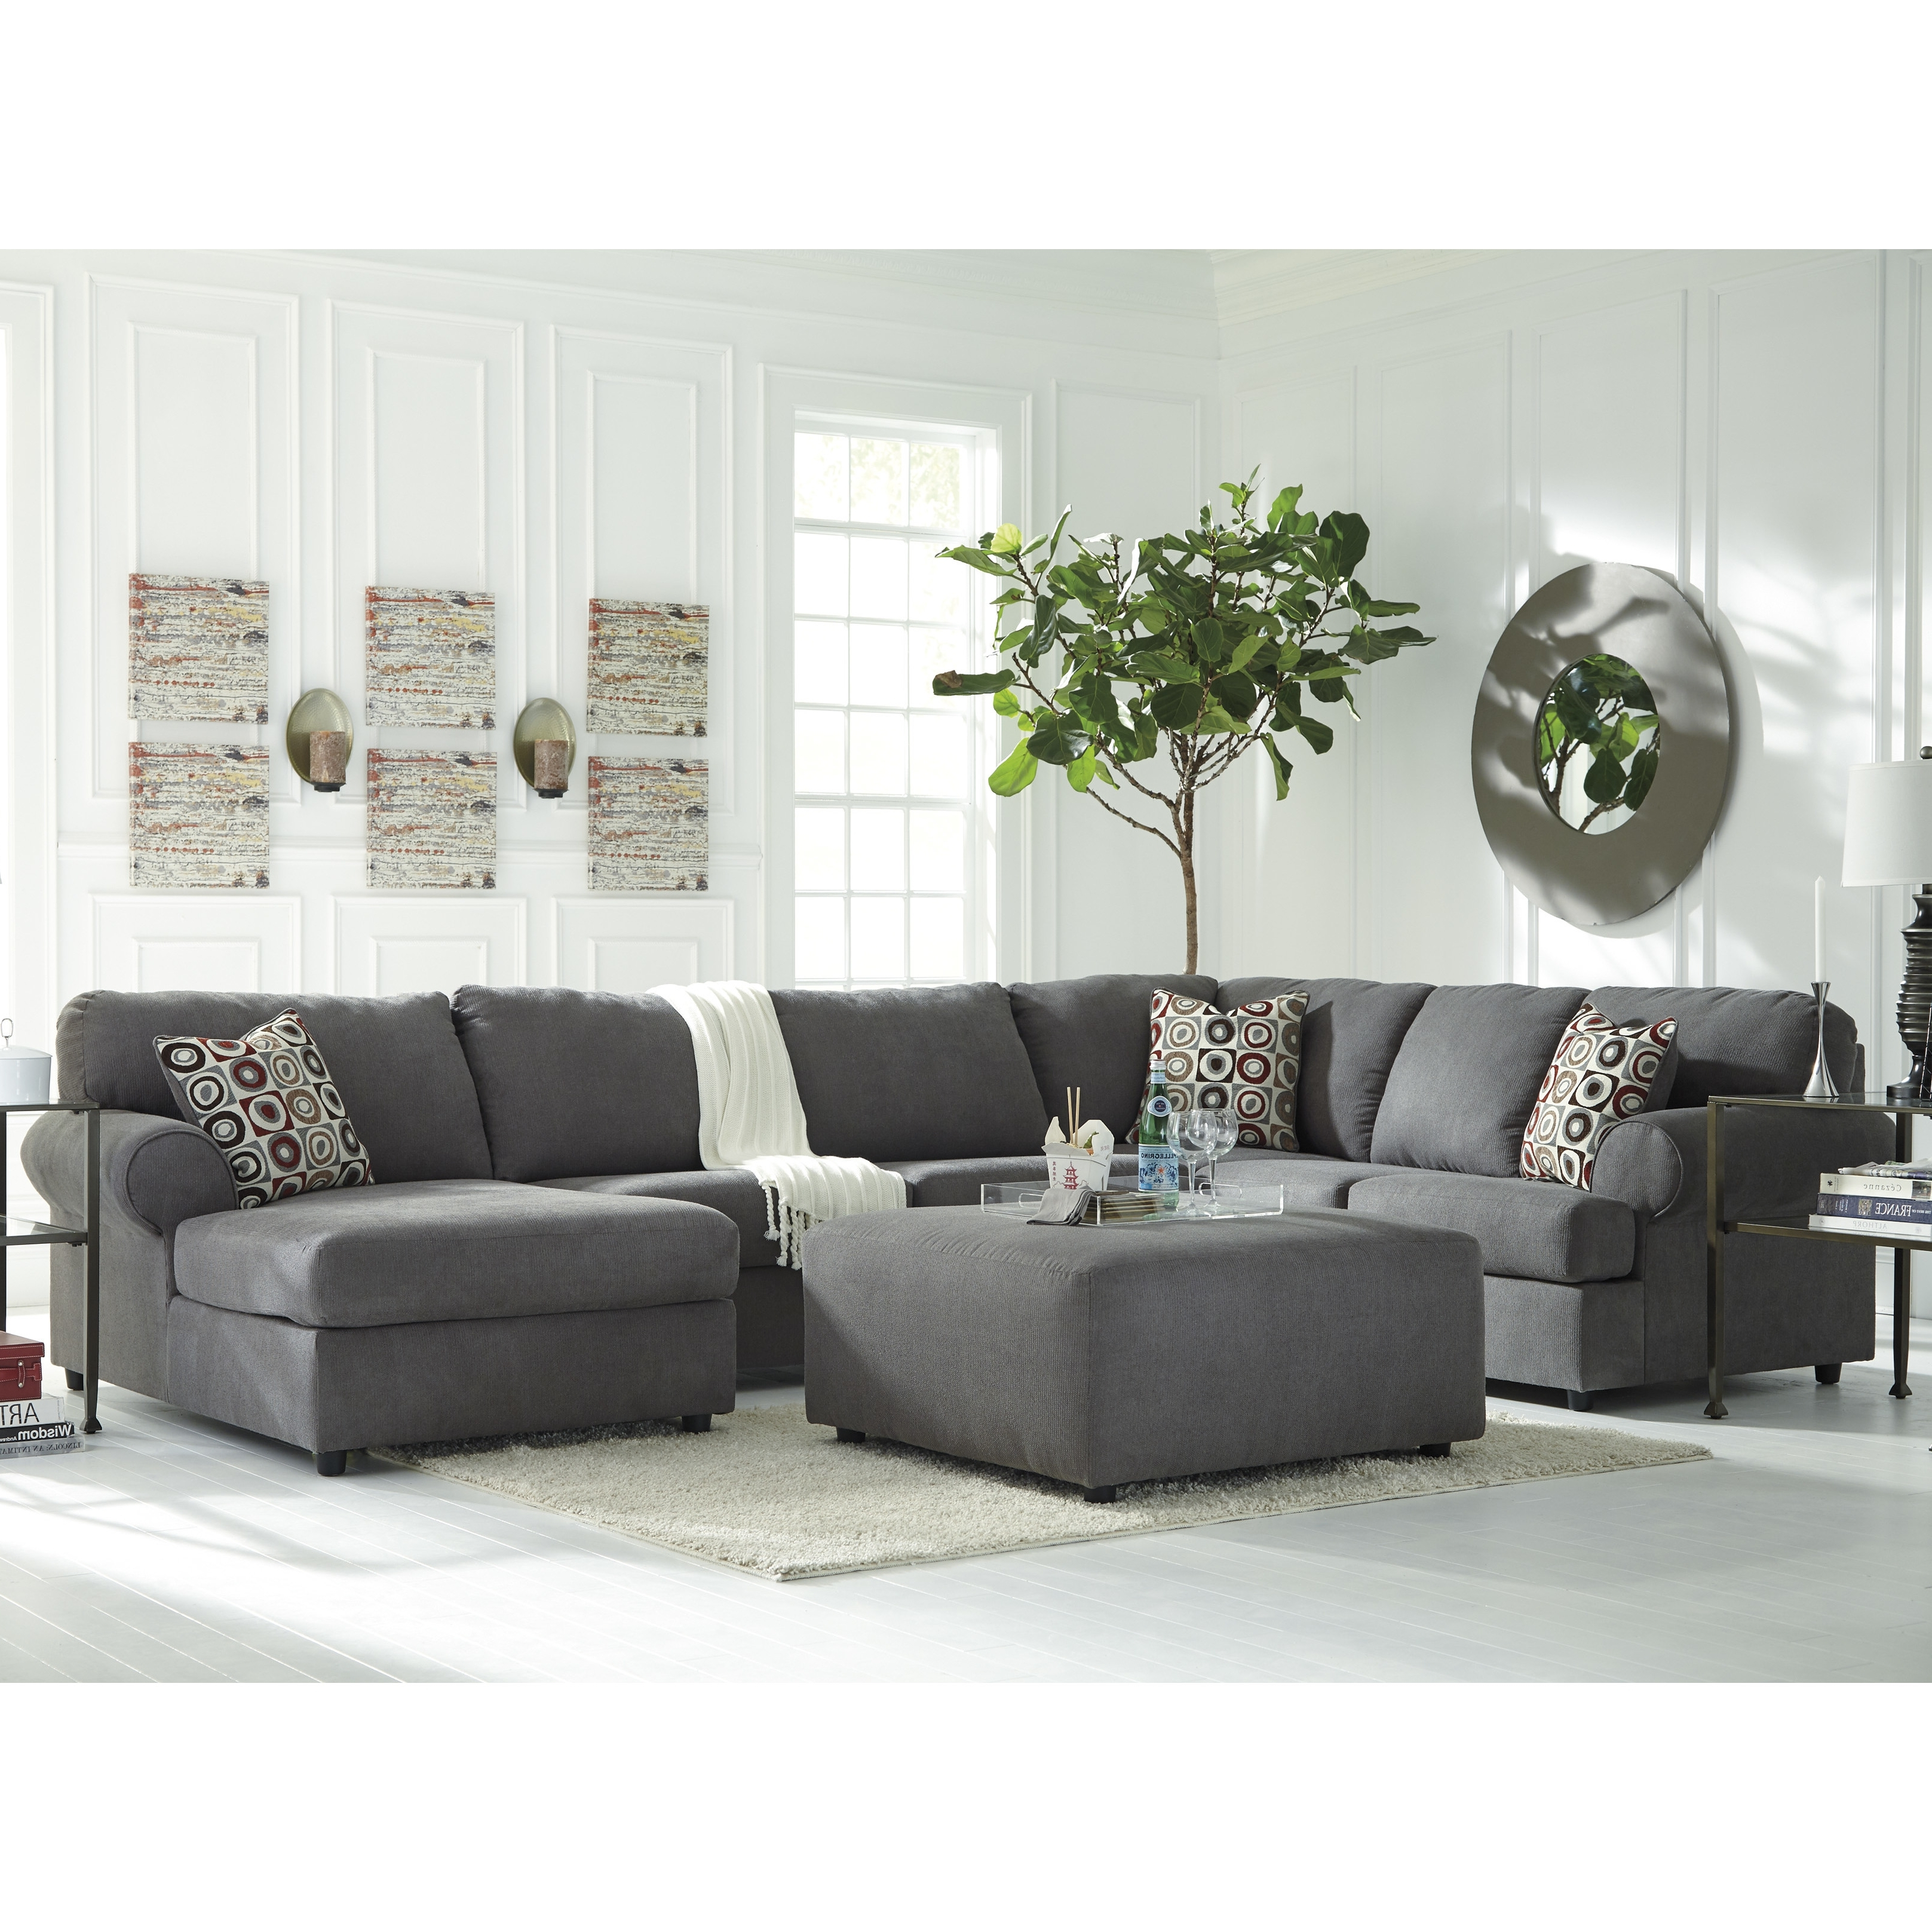 Sellersville Reversible Sectional (View 11 of 15)